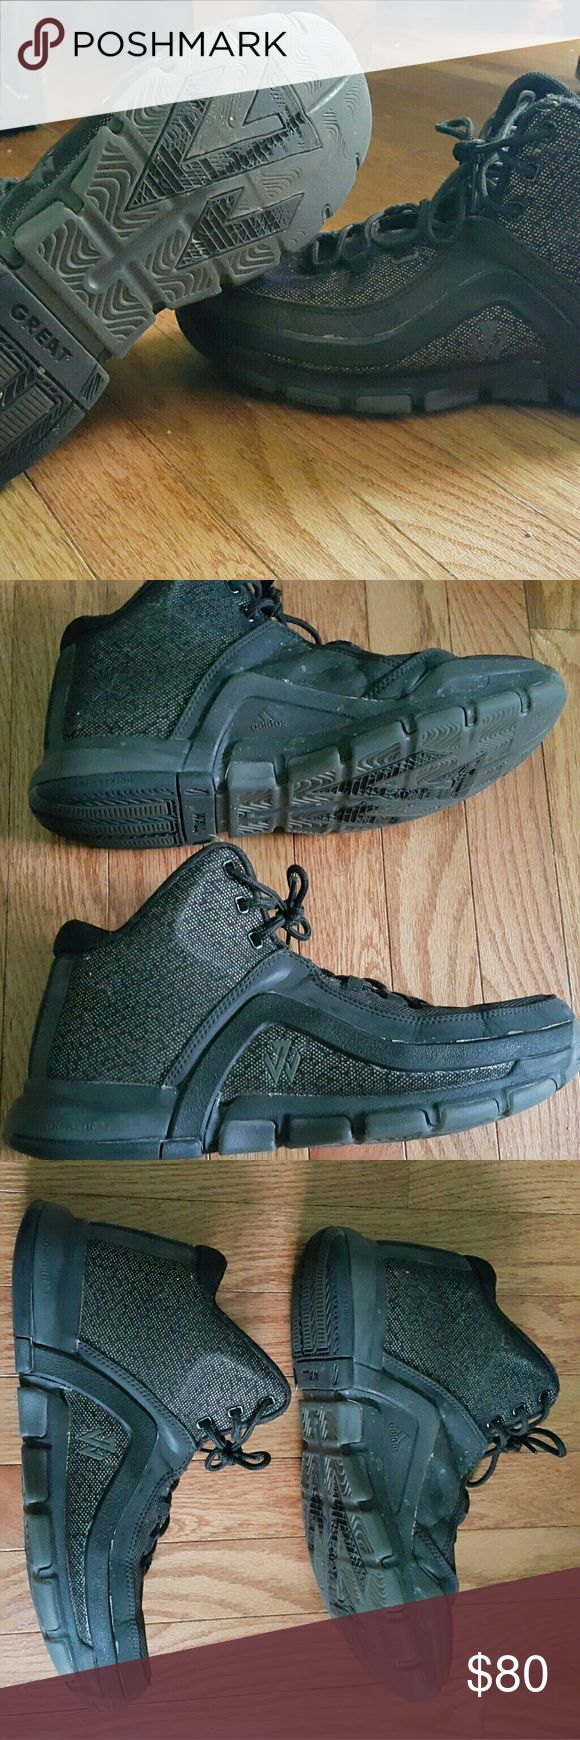 John wall 2 Used 2 or 3 times not my style but good looking shoe, very comfortable, size 10.5 comes with original box adidas Shoes Sneakers